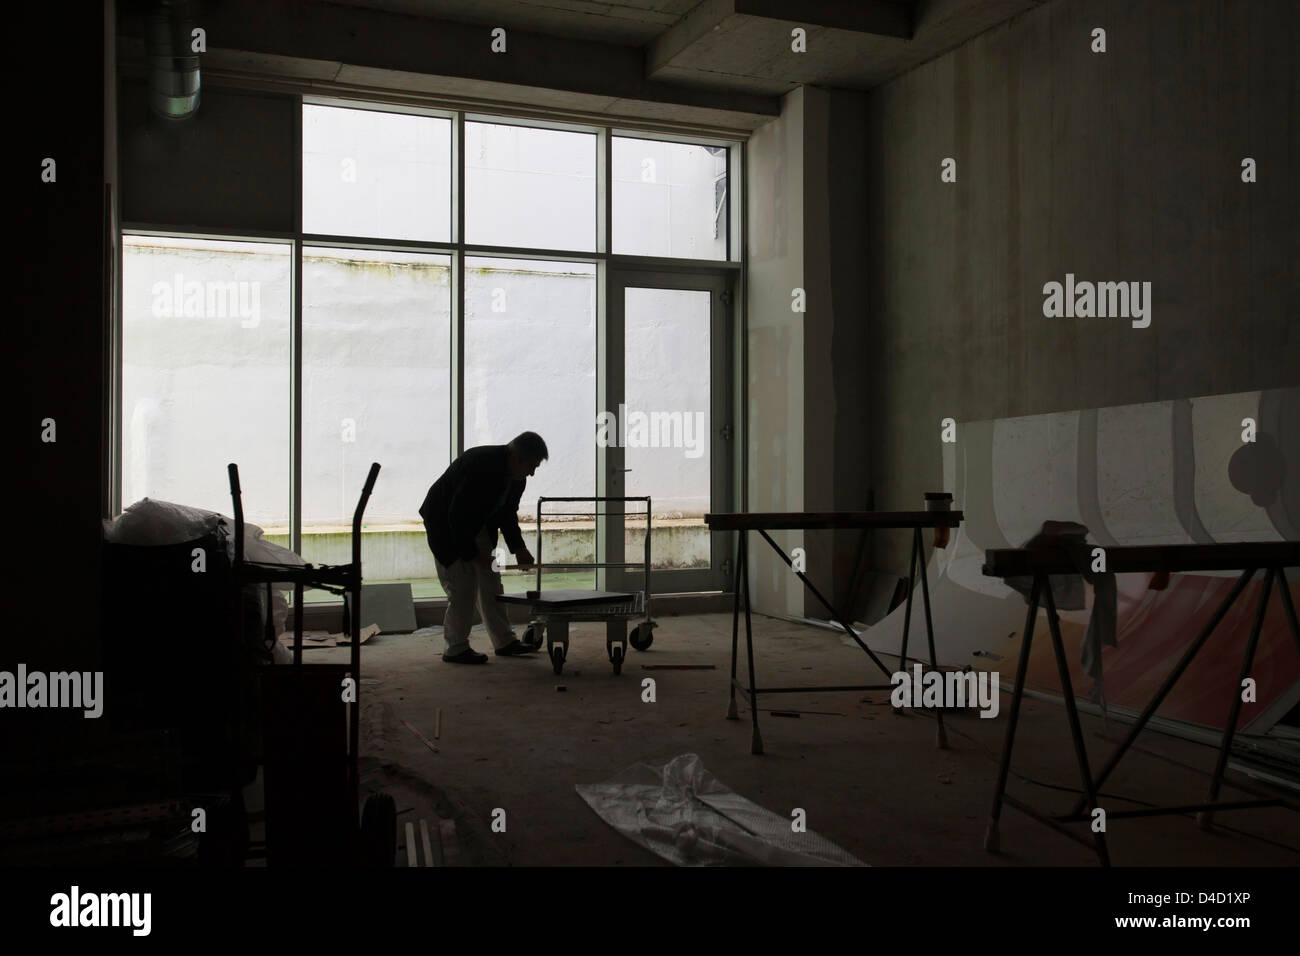 Silhouette of construction worker inside building. - Stock Image